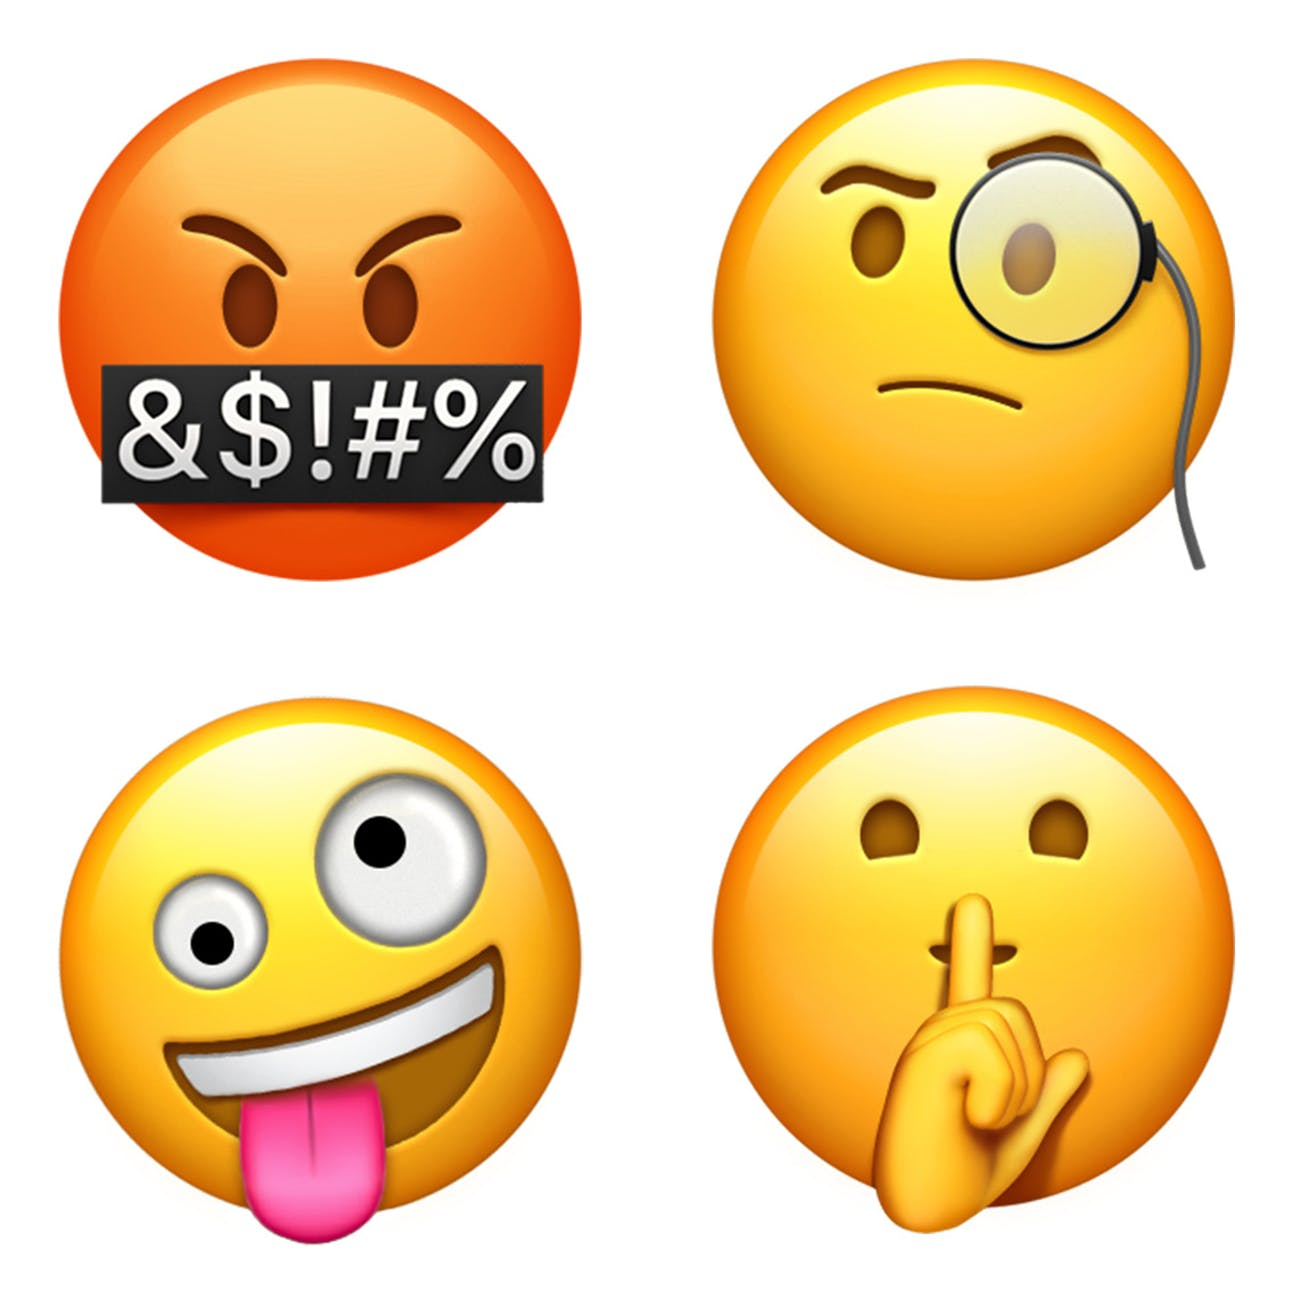 These 4 New iPhone Emoji Will Cause Some Intense Arguments